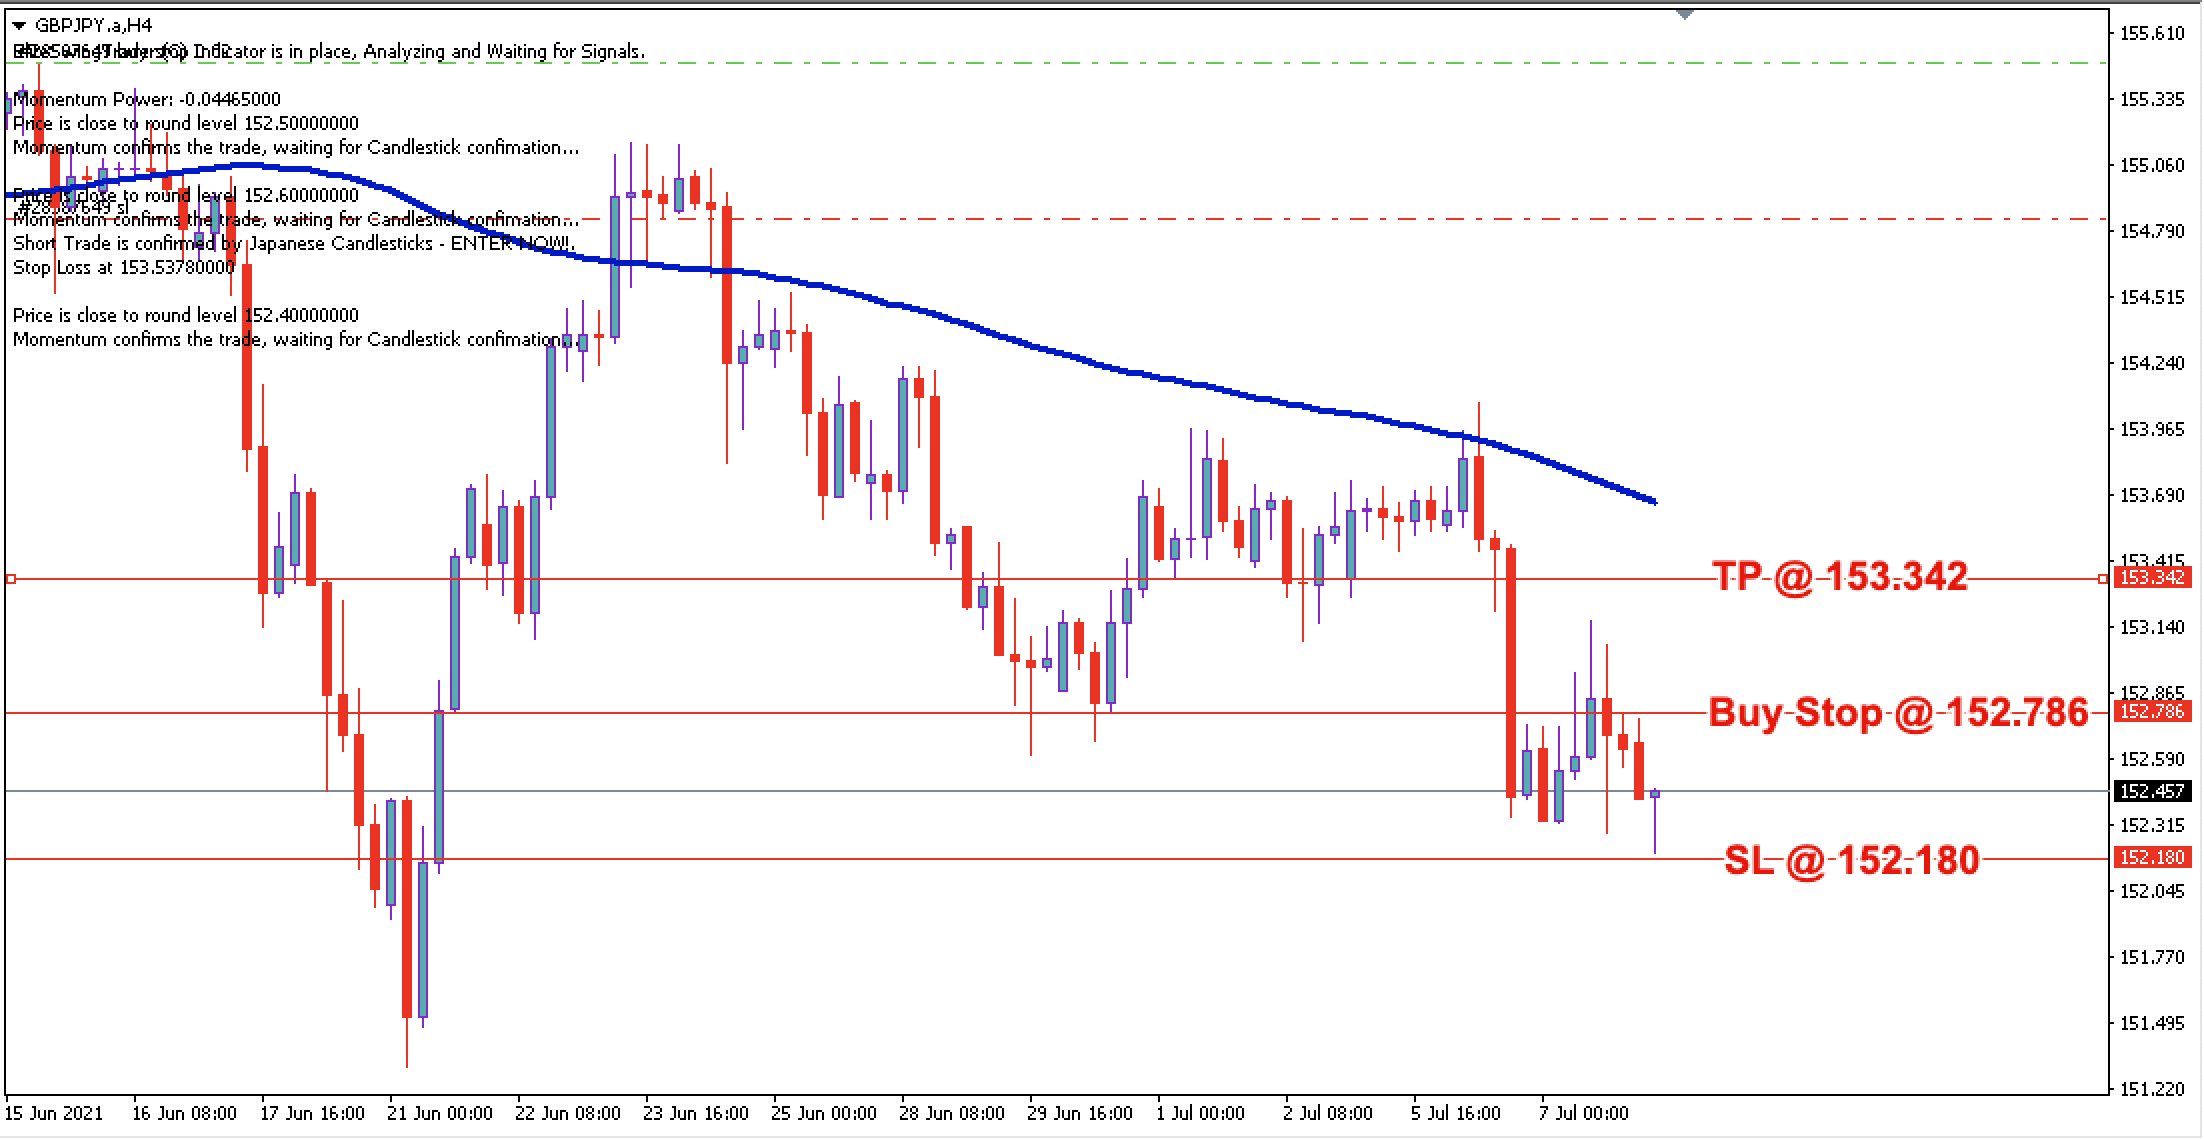 GBP/JPY Daily Price Forecast – 8th July 2021